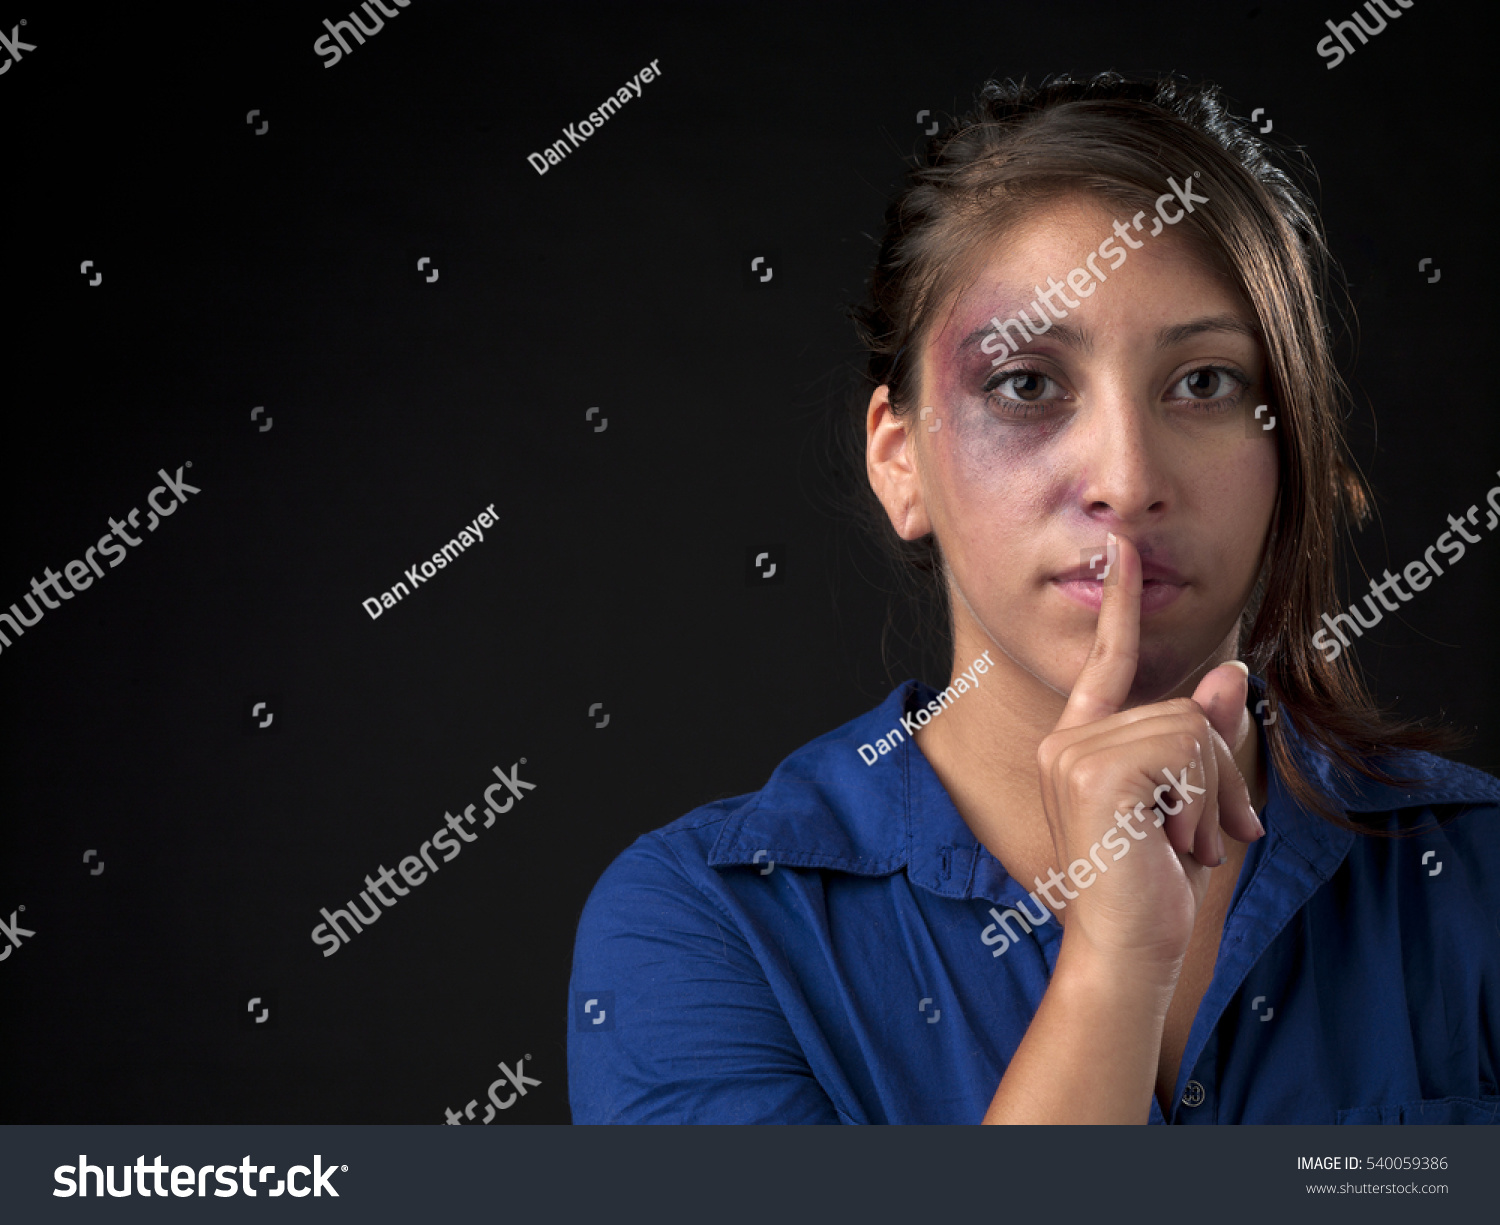 woman body facial injuries which can stock photo 540059386